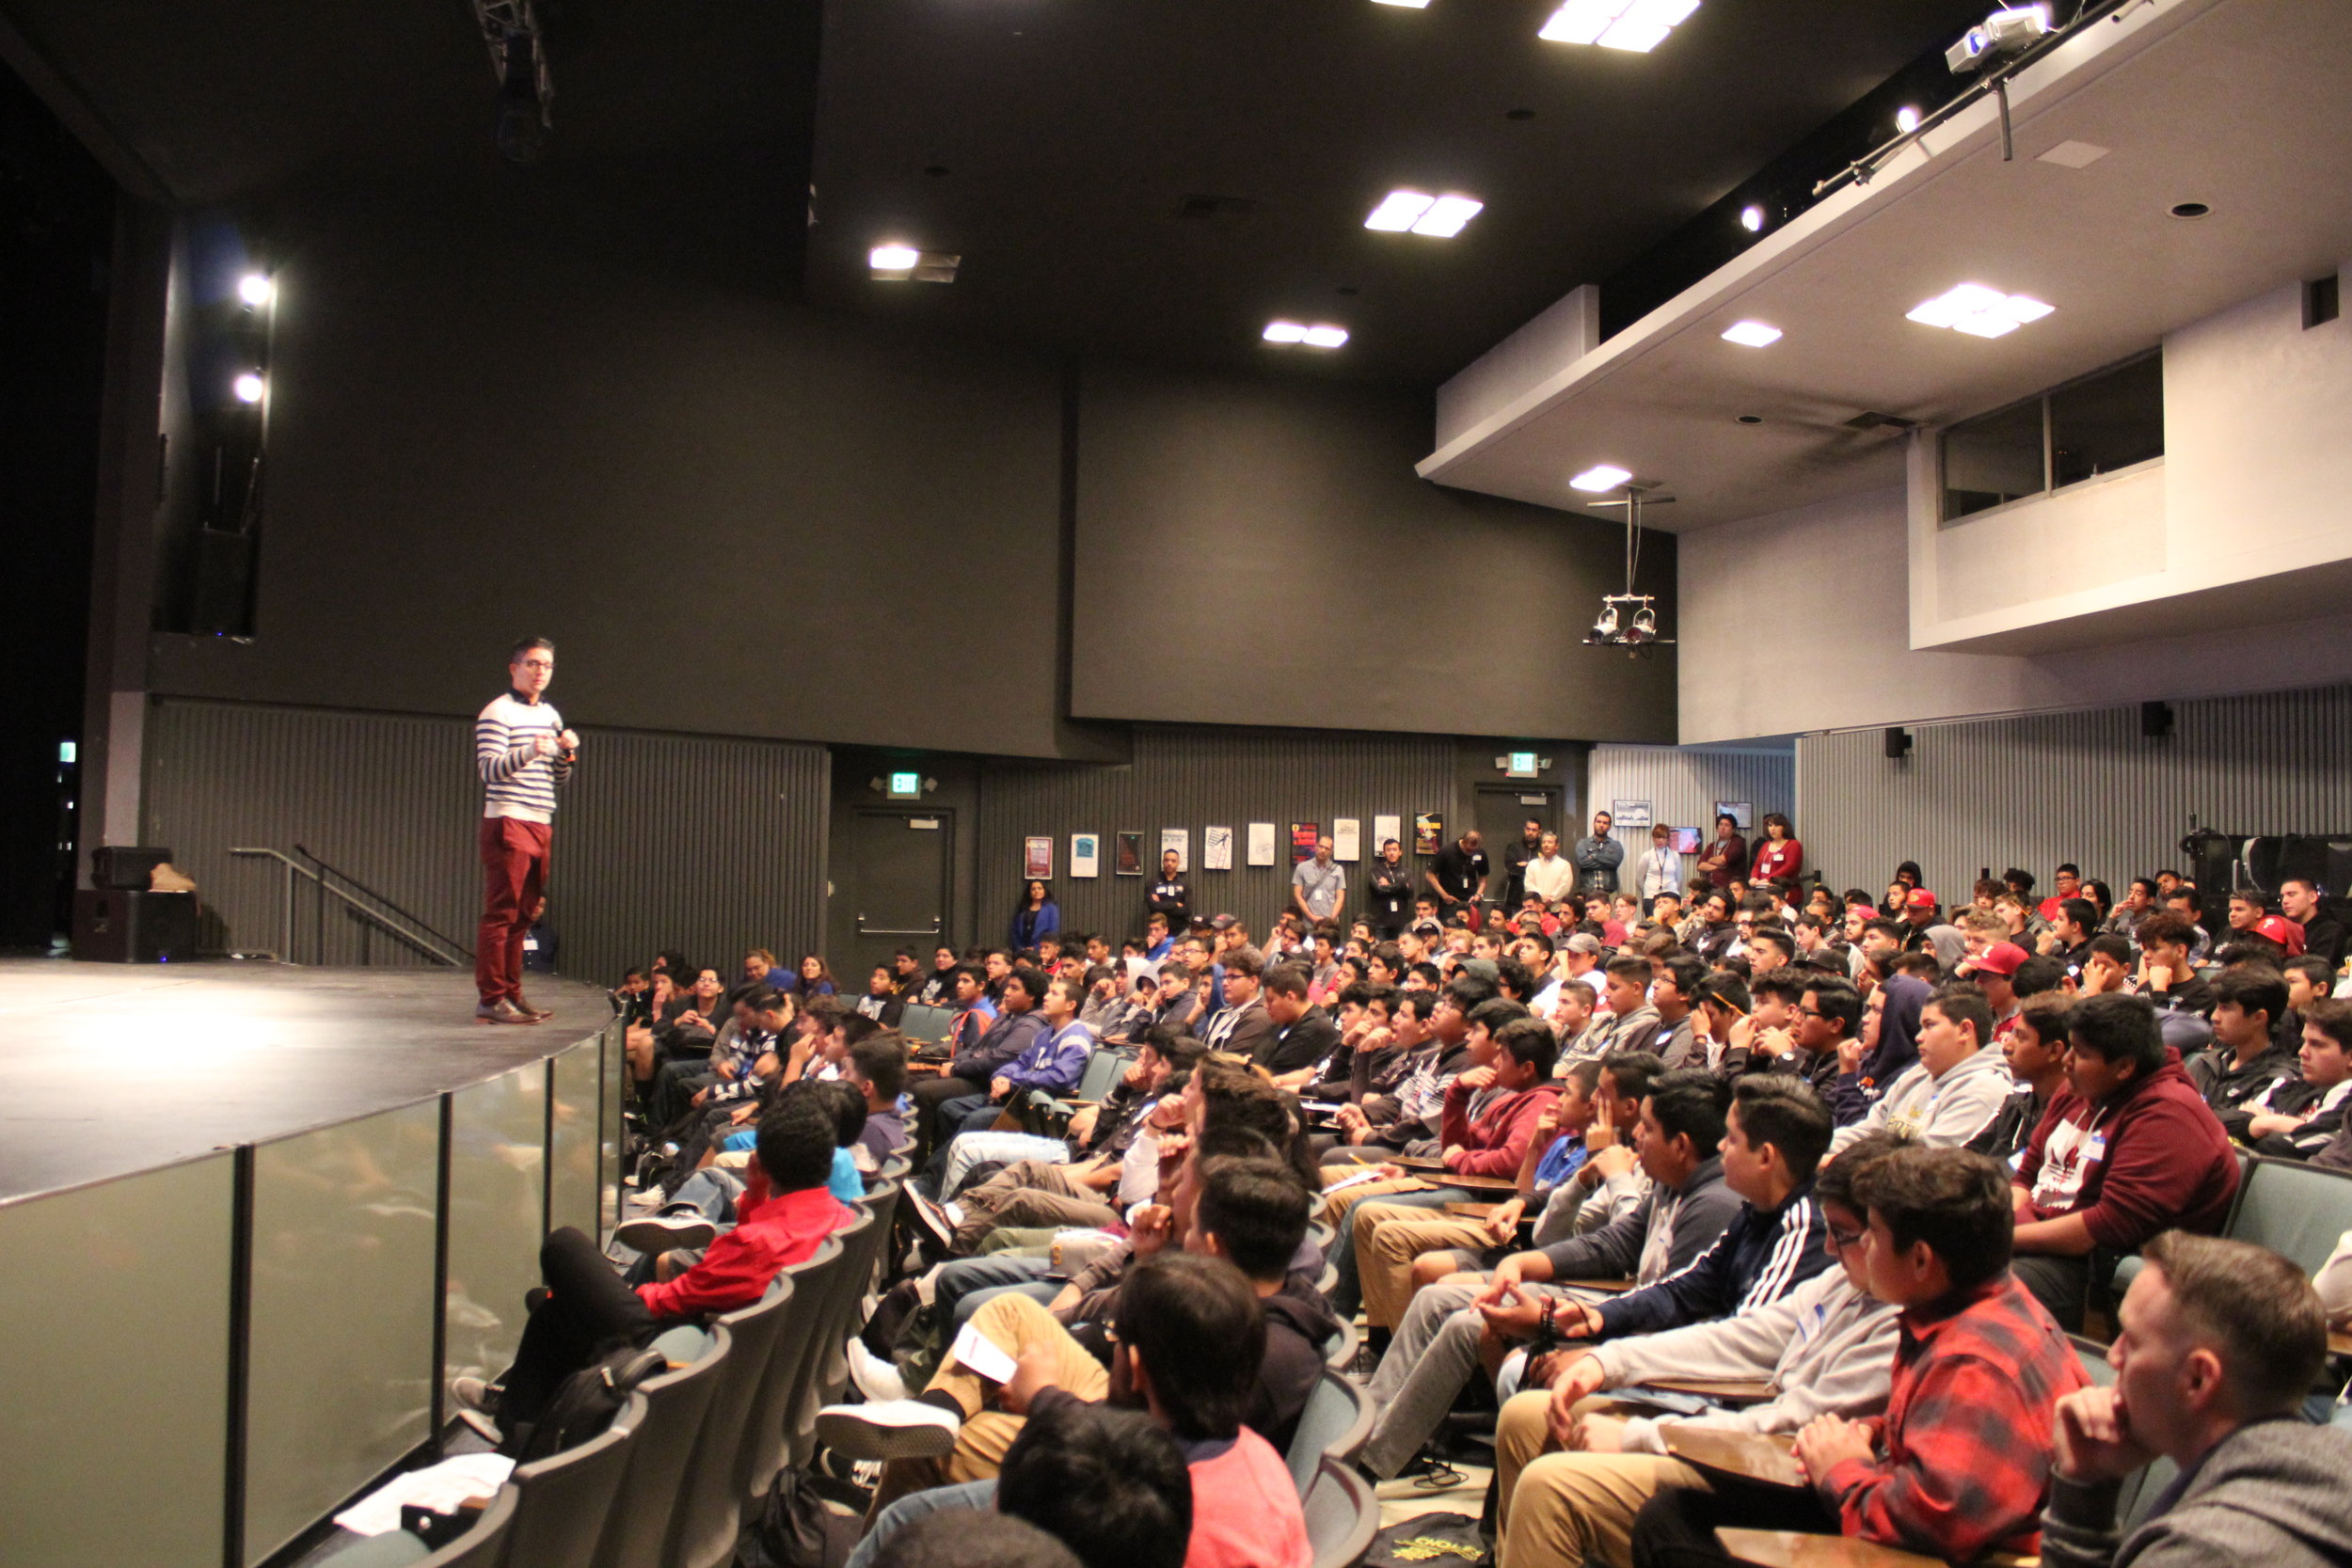 Richard giving a presentation in a packed auditorium